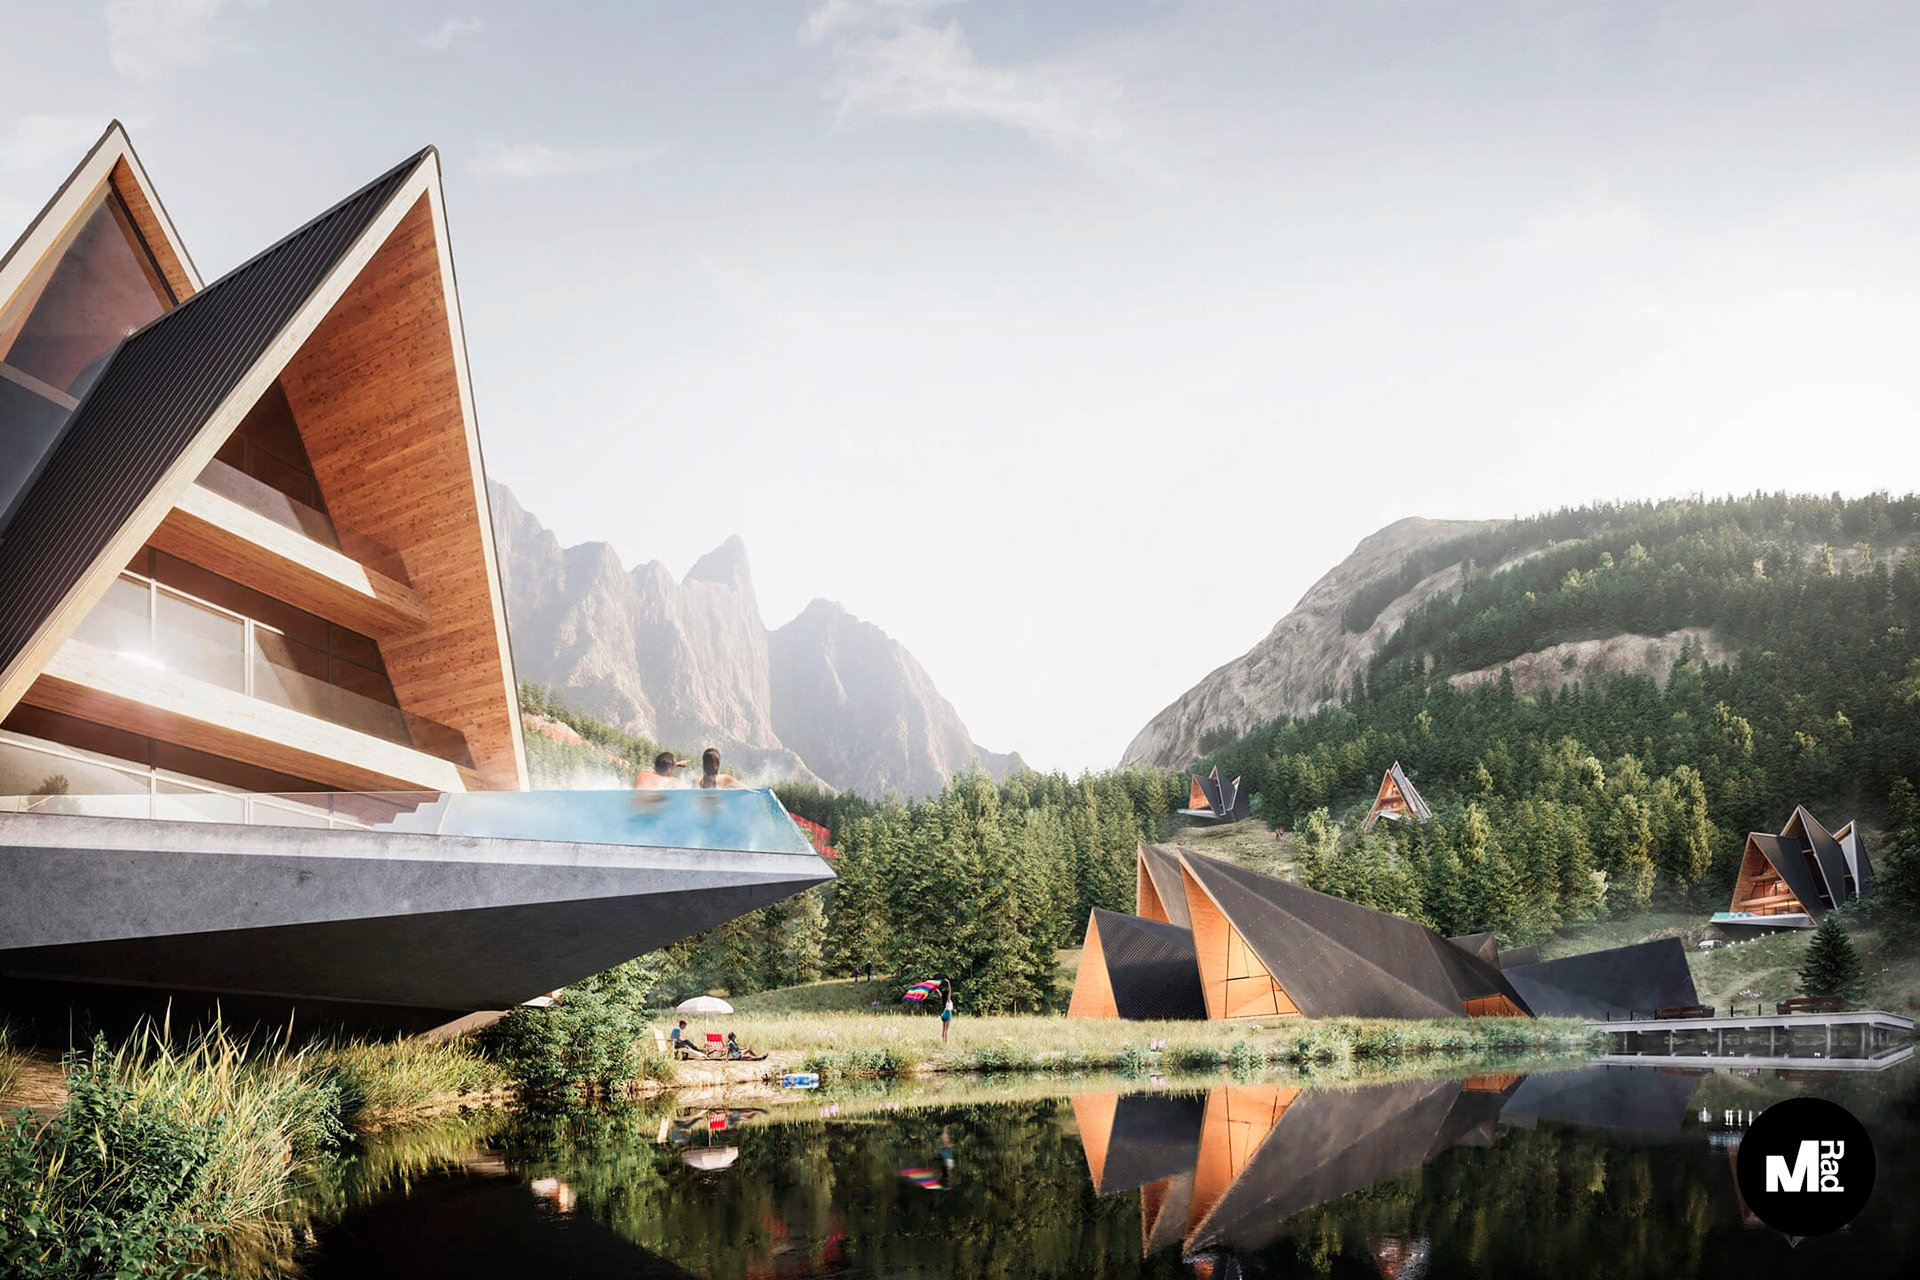 3D Visualization of a Mountain Lakeside Resort